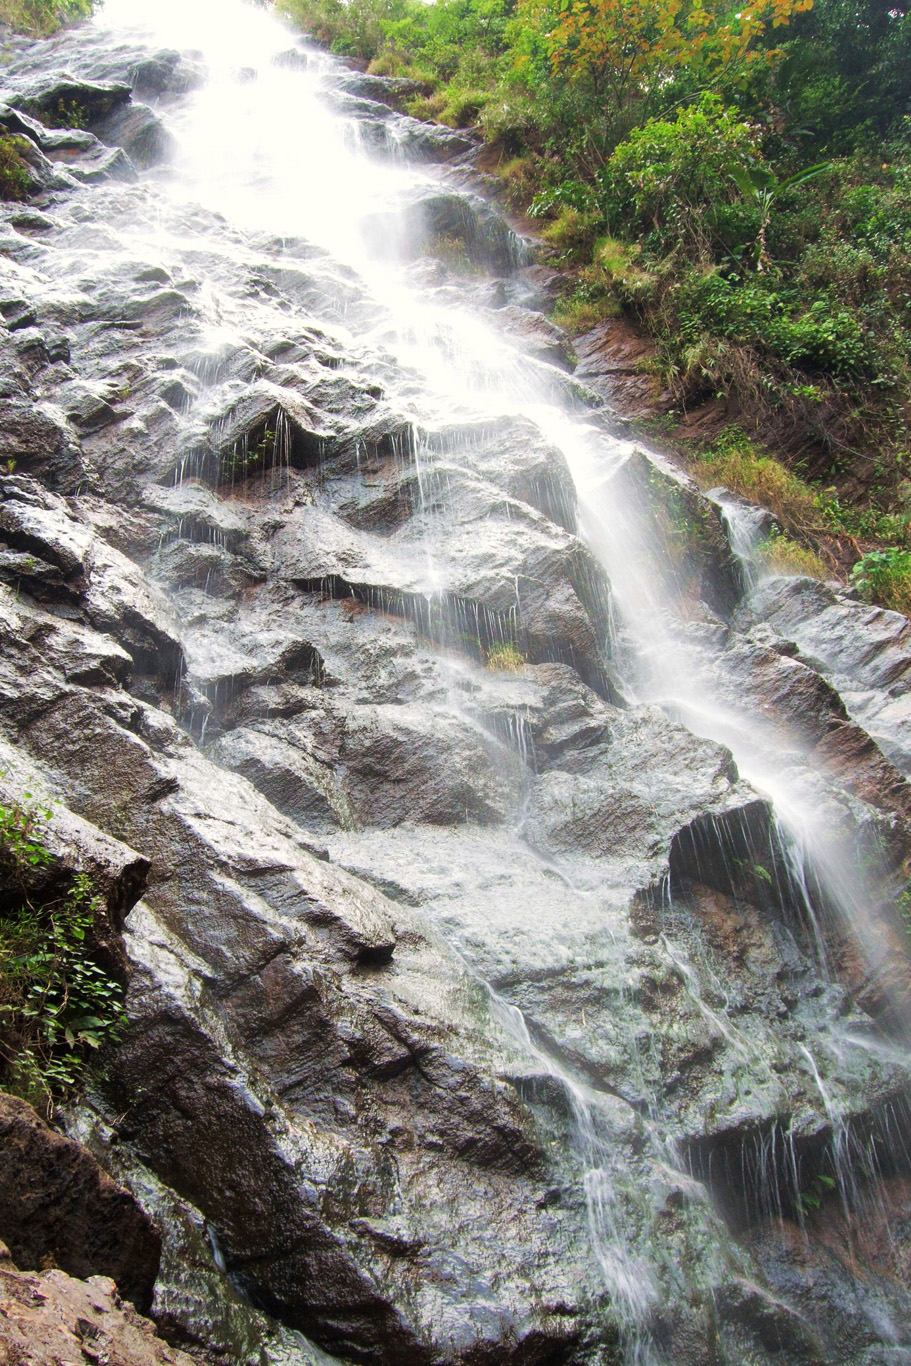 Katiki Waterfall